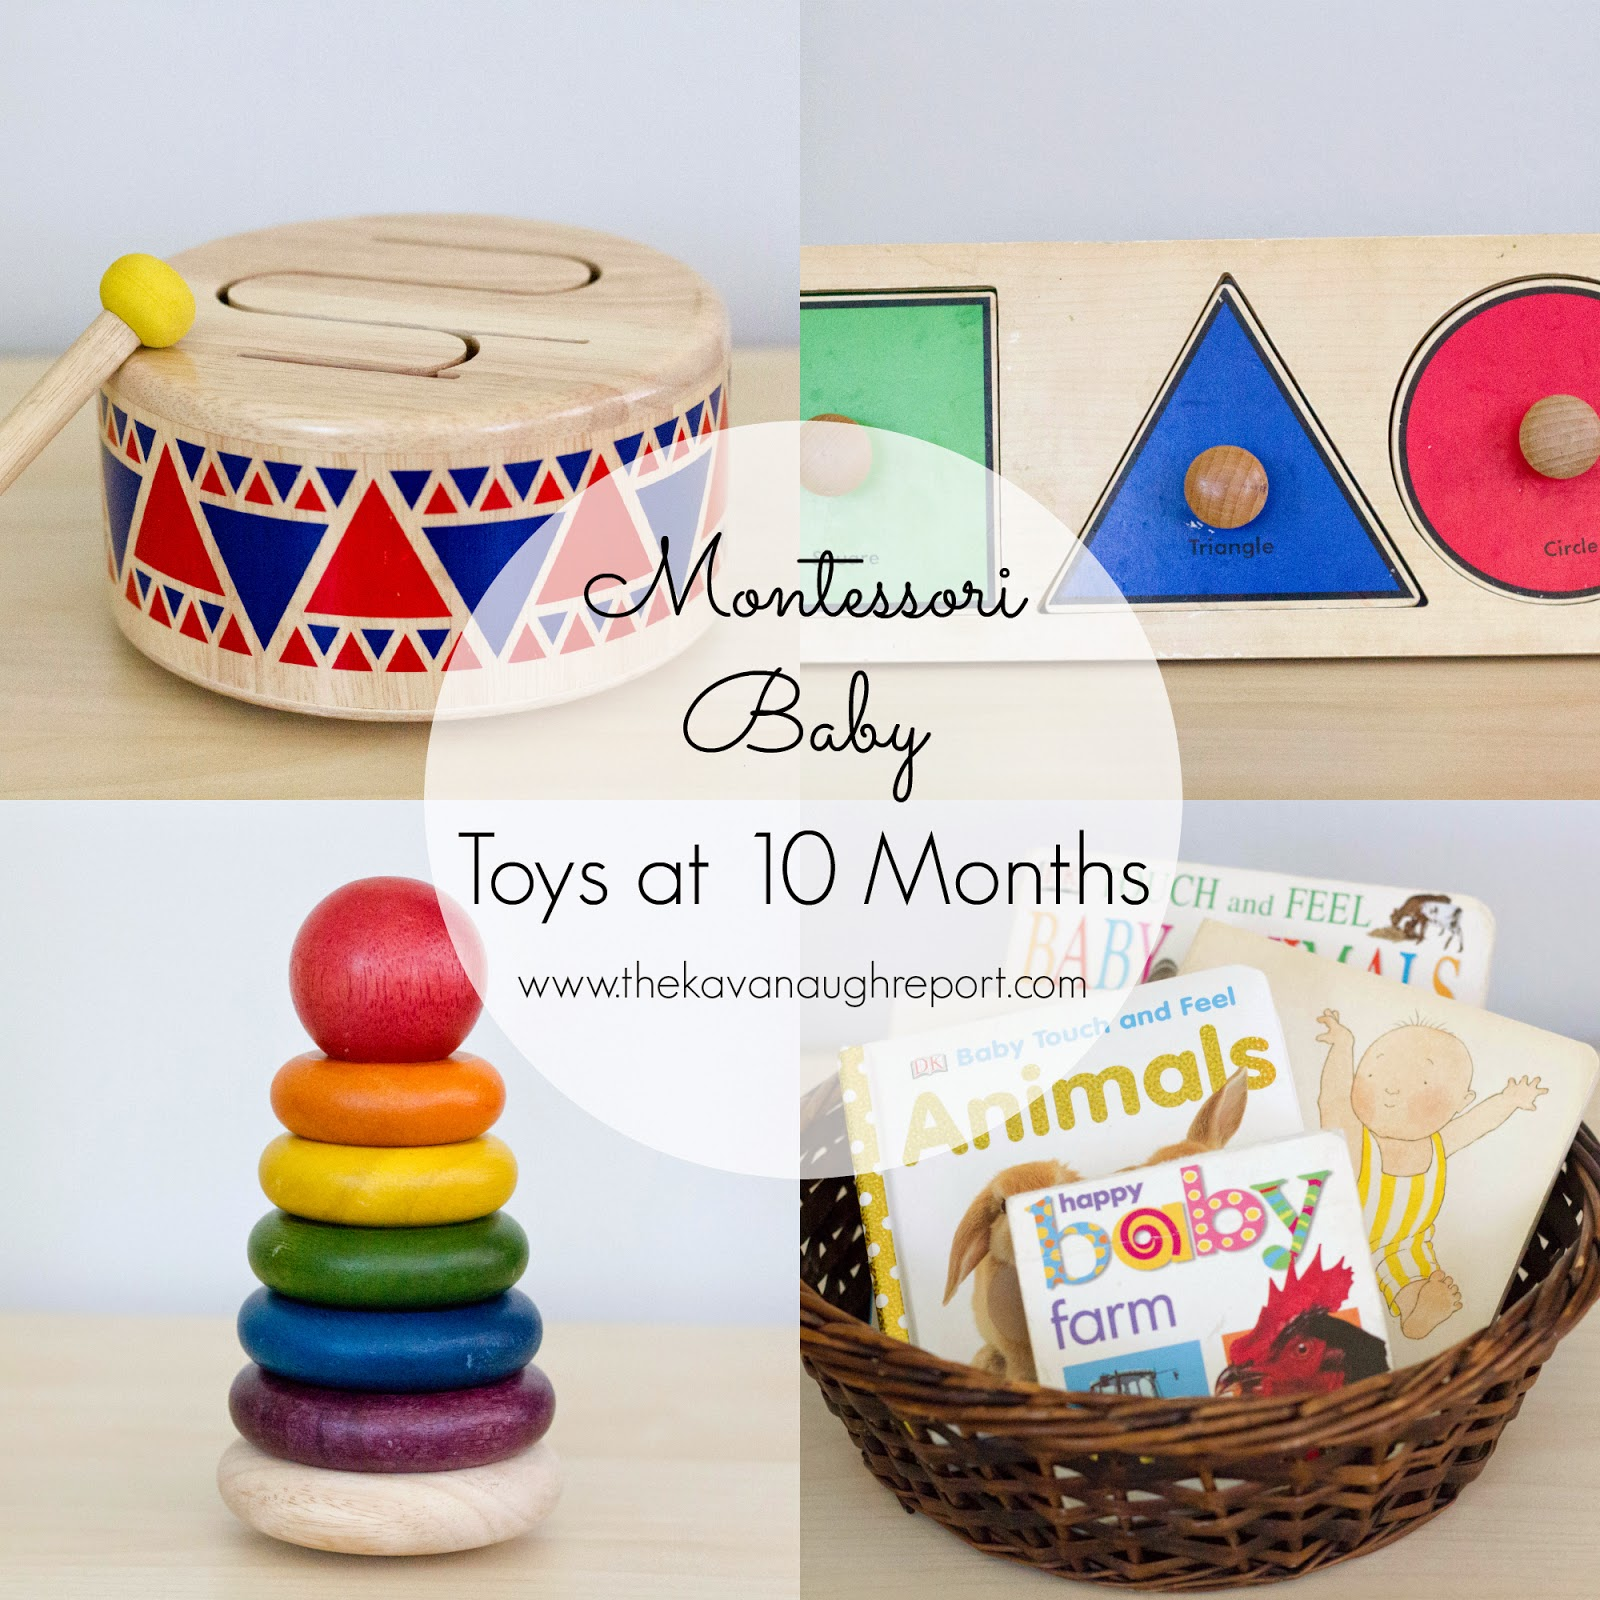 Toys For 10 Month Old : Montessori baby toys to months